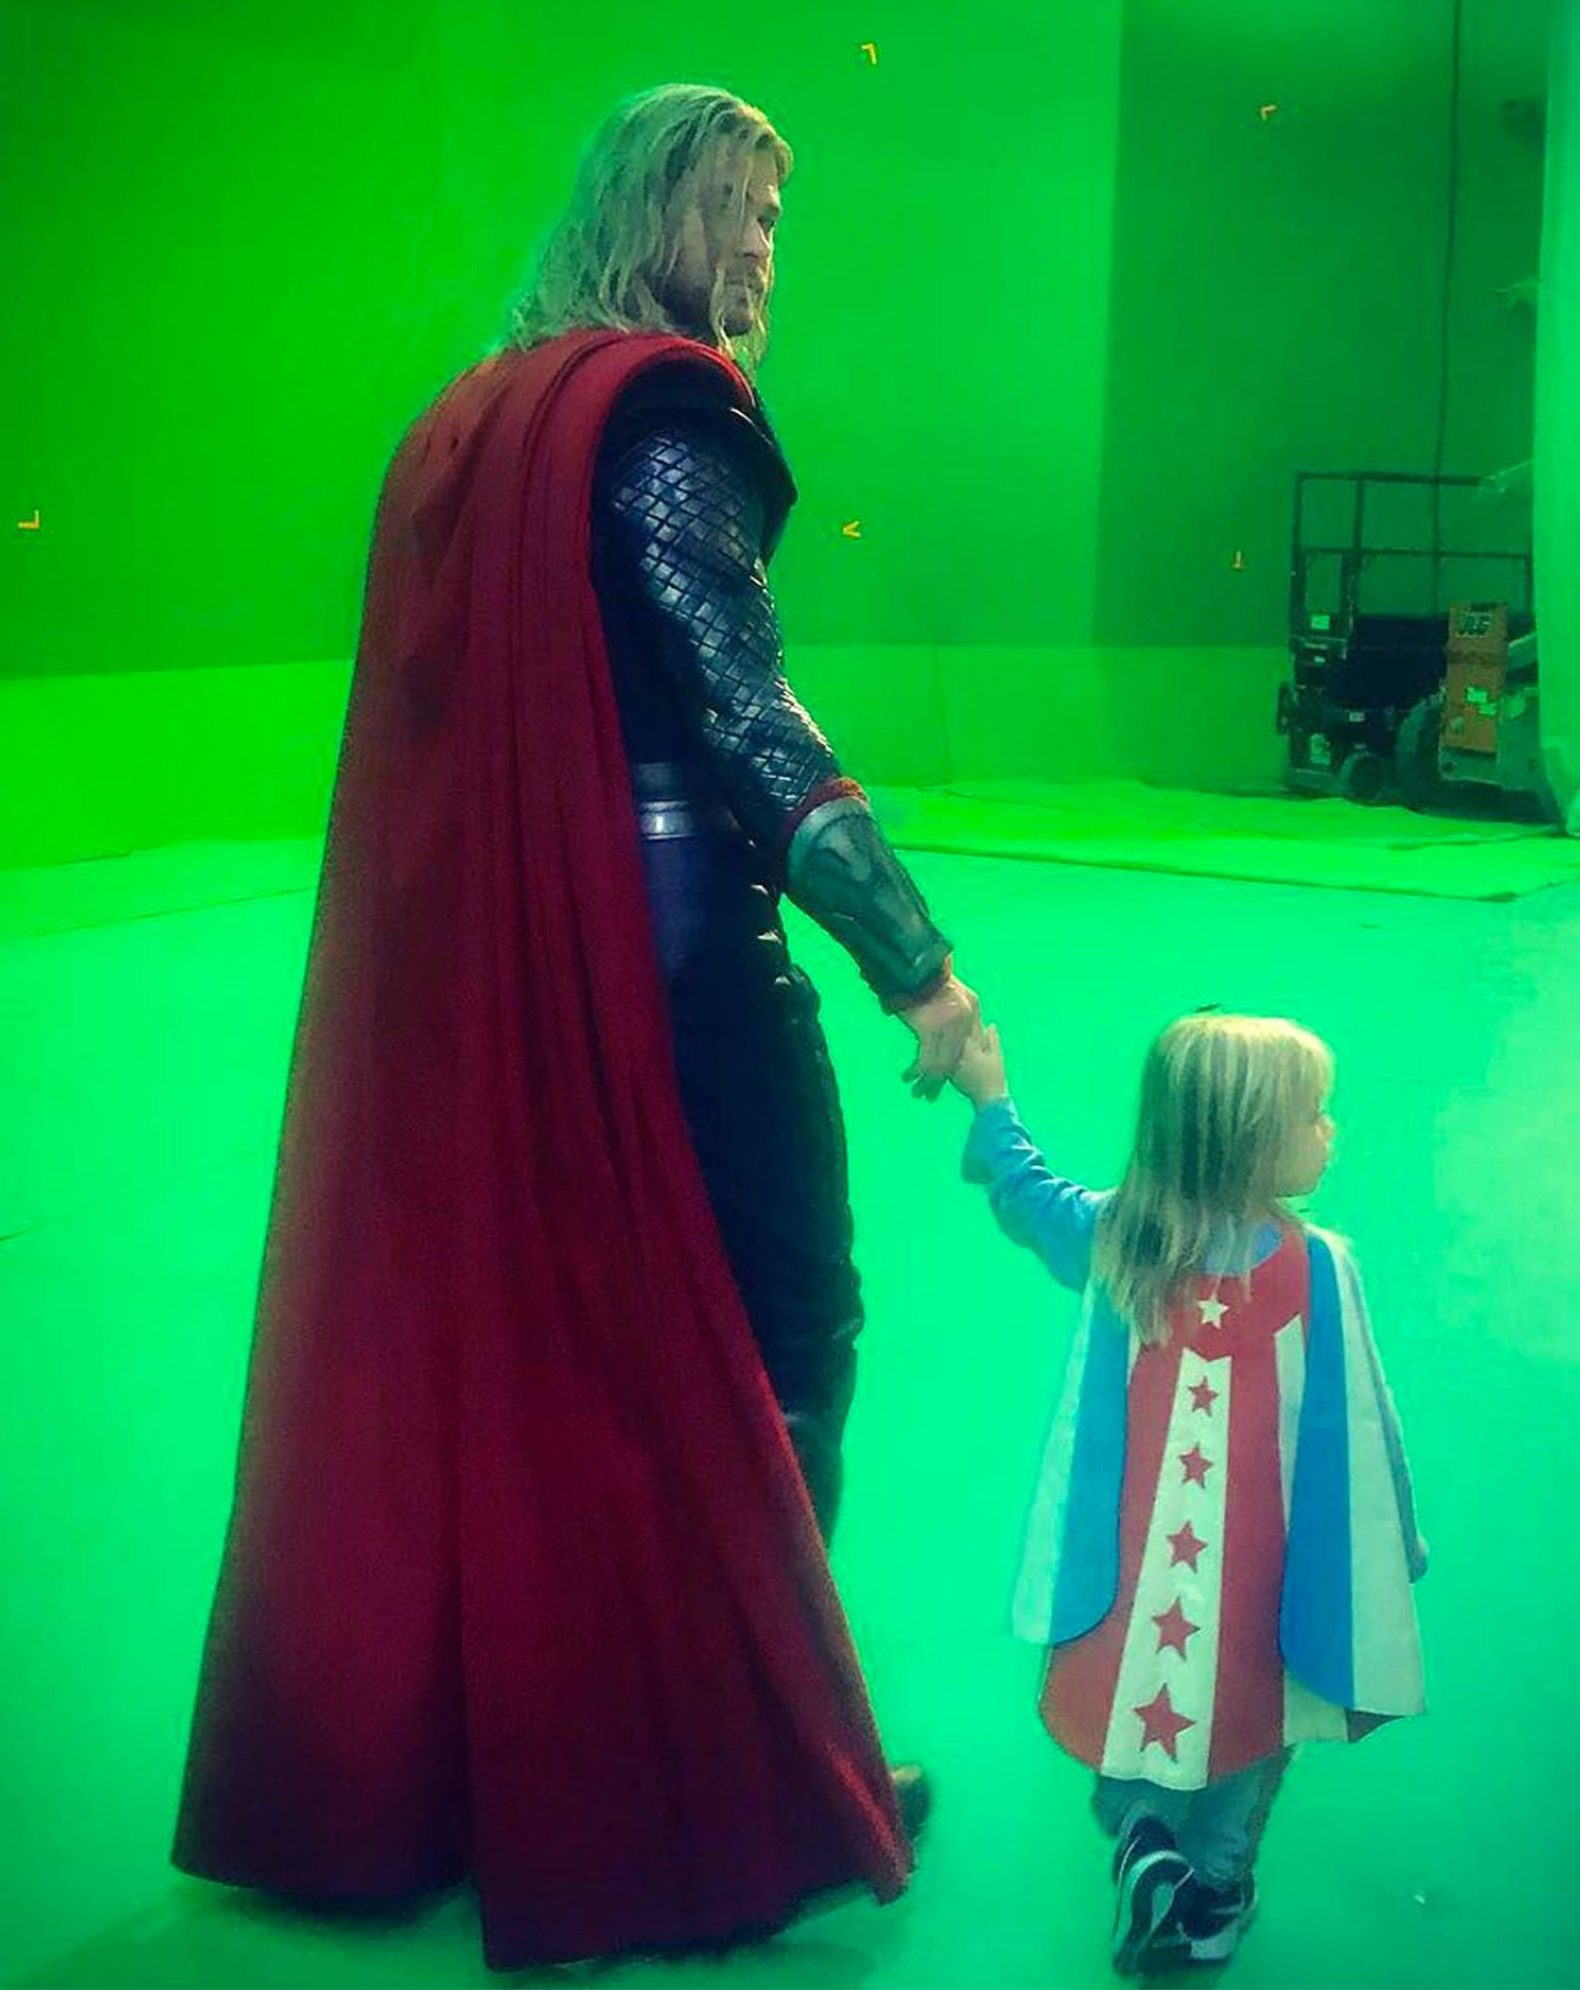 chris 28 e1560178446303 20 Things You Didn't Know About Chris Hemsworth